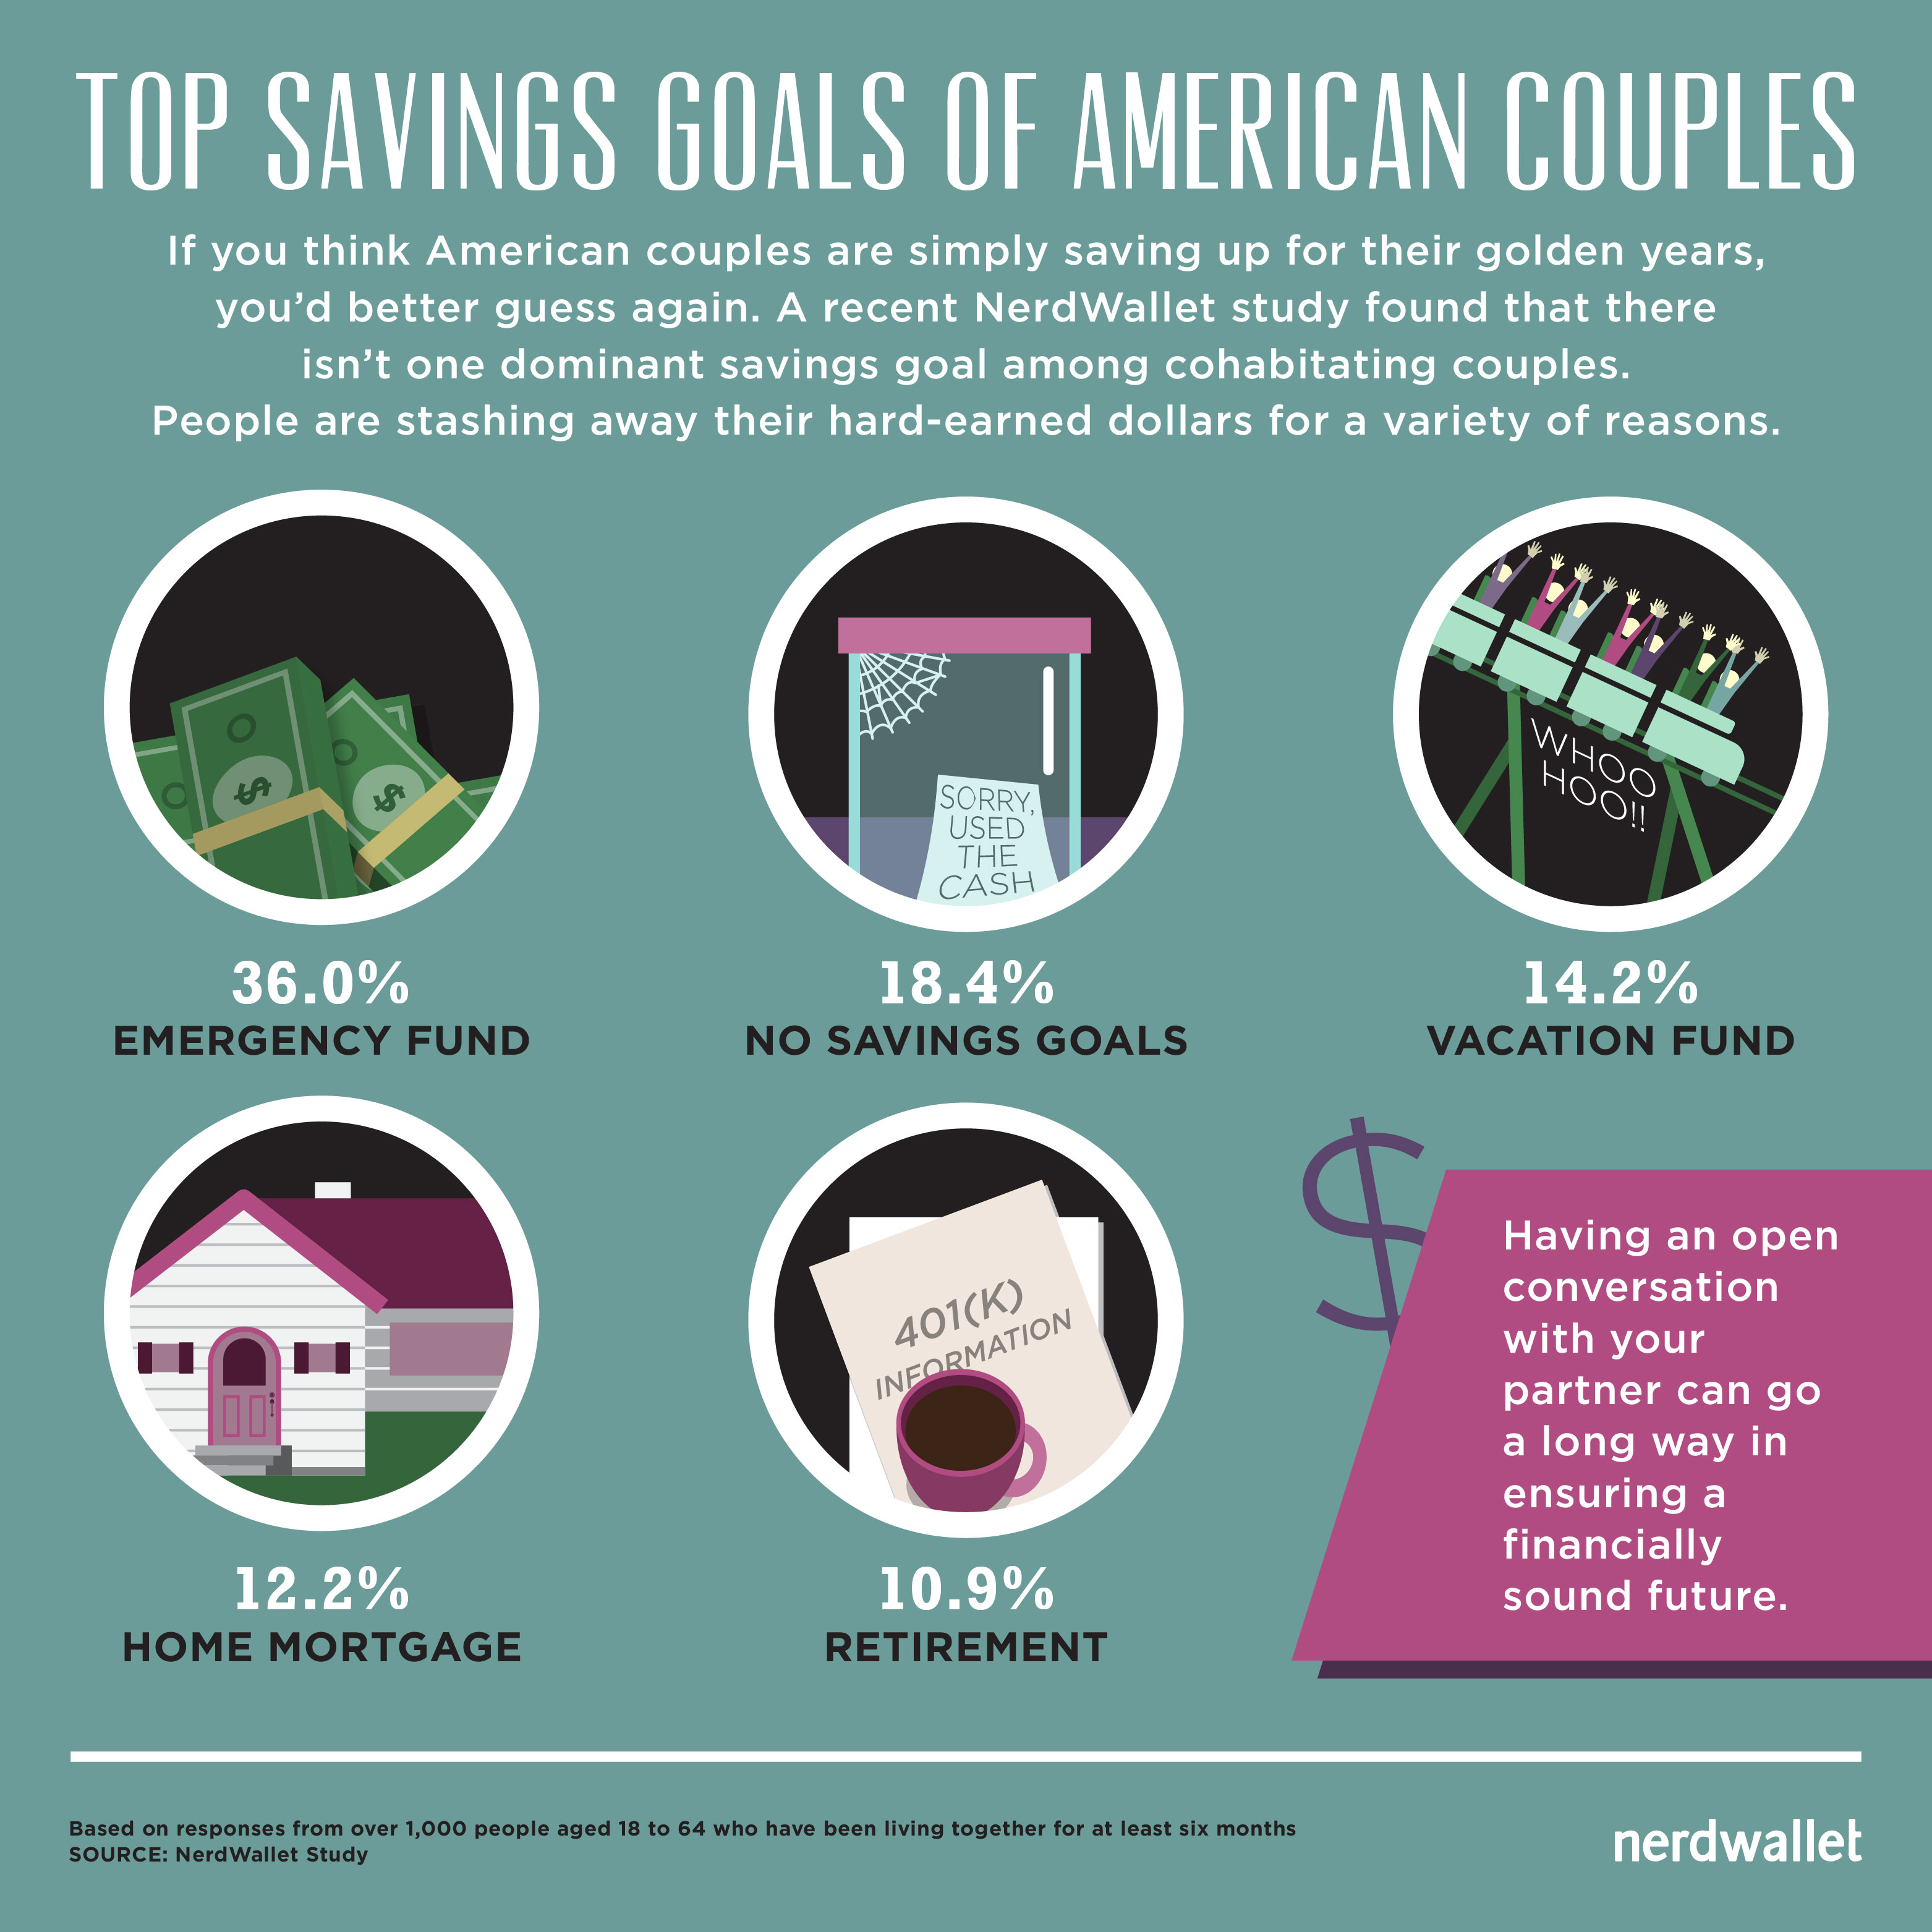 top savings goals american couples list chart